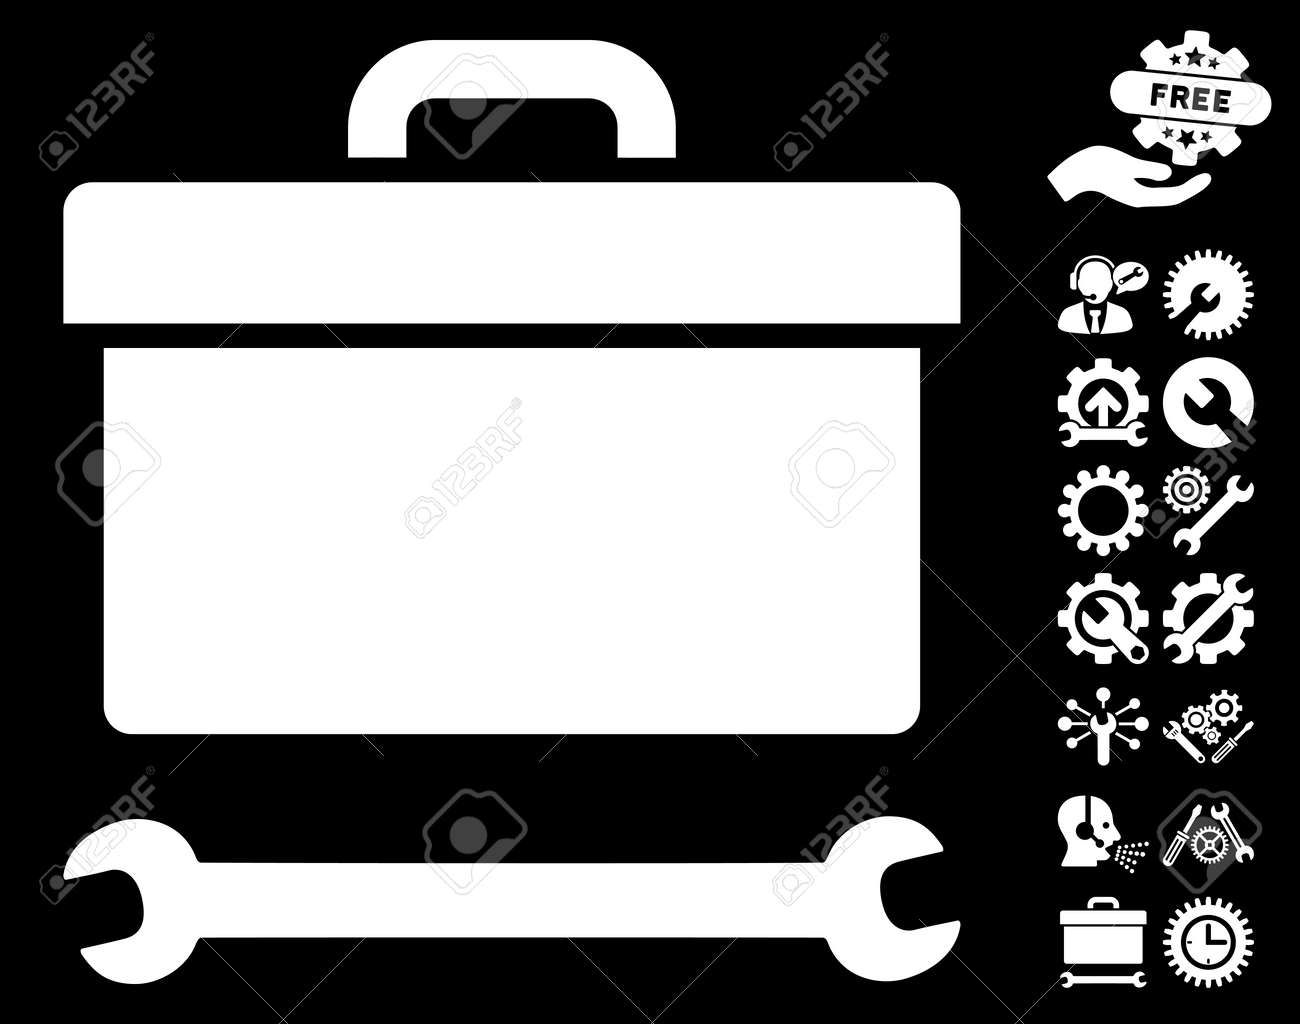 tool box clipart. toolbox icon with bonus service clip art glyph illustration style is flat iconic white symbols tool box clipart